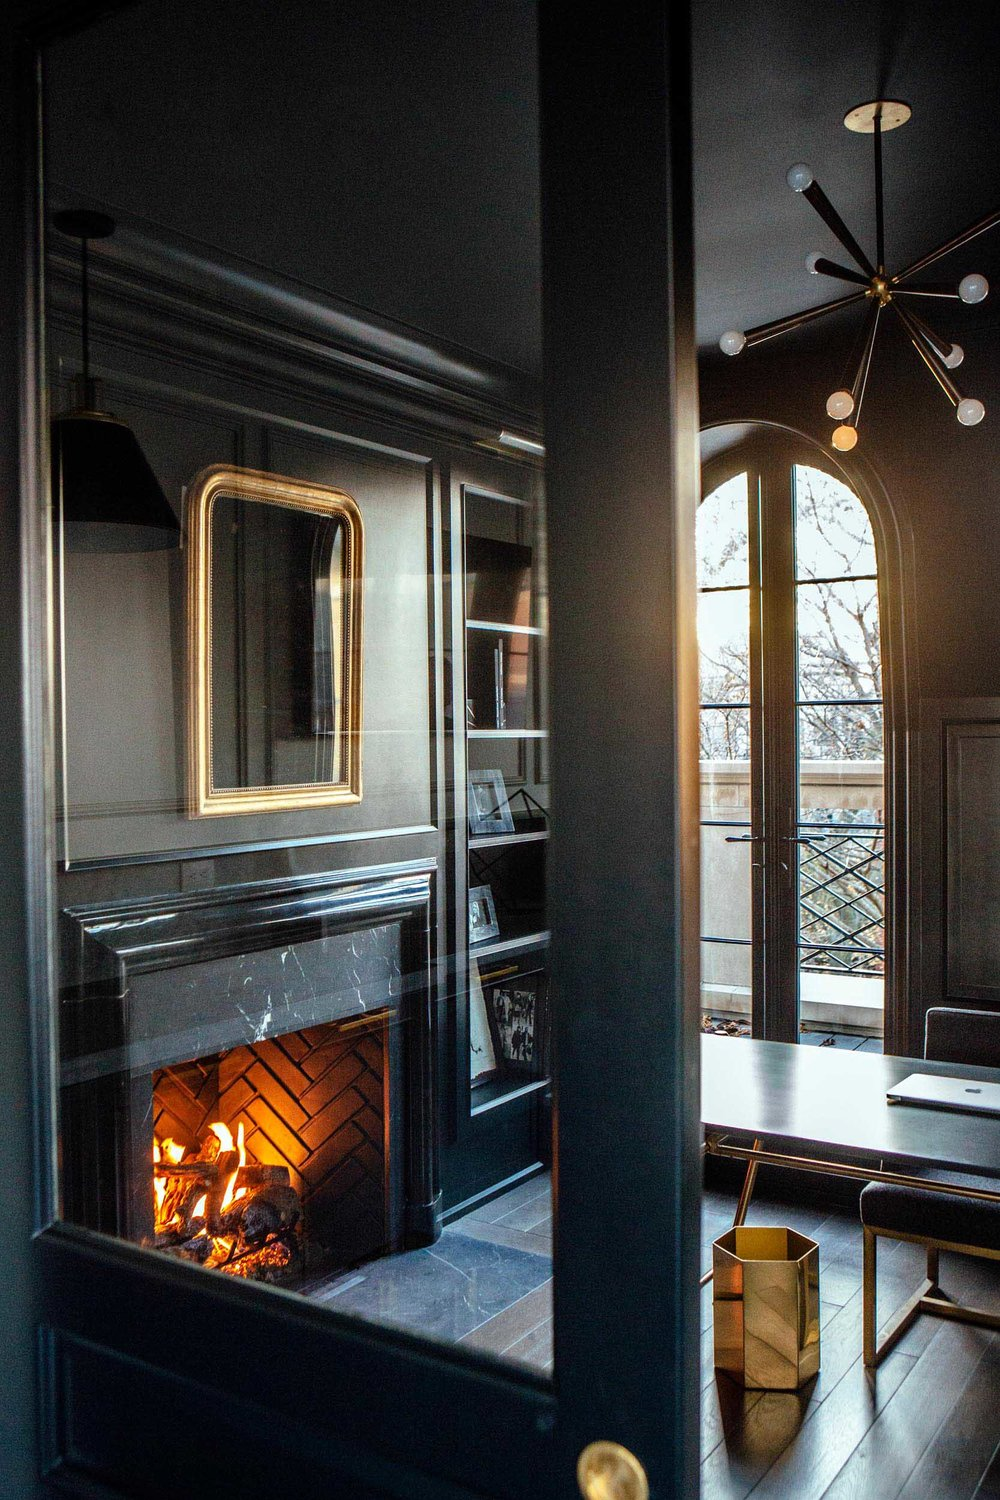 Leo_Designs_Chicago_interior_design_lincoln_park_parisian14.jpg